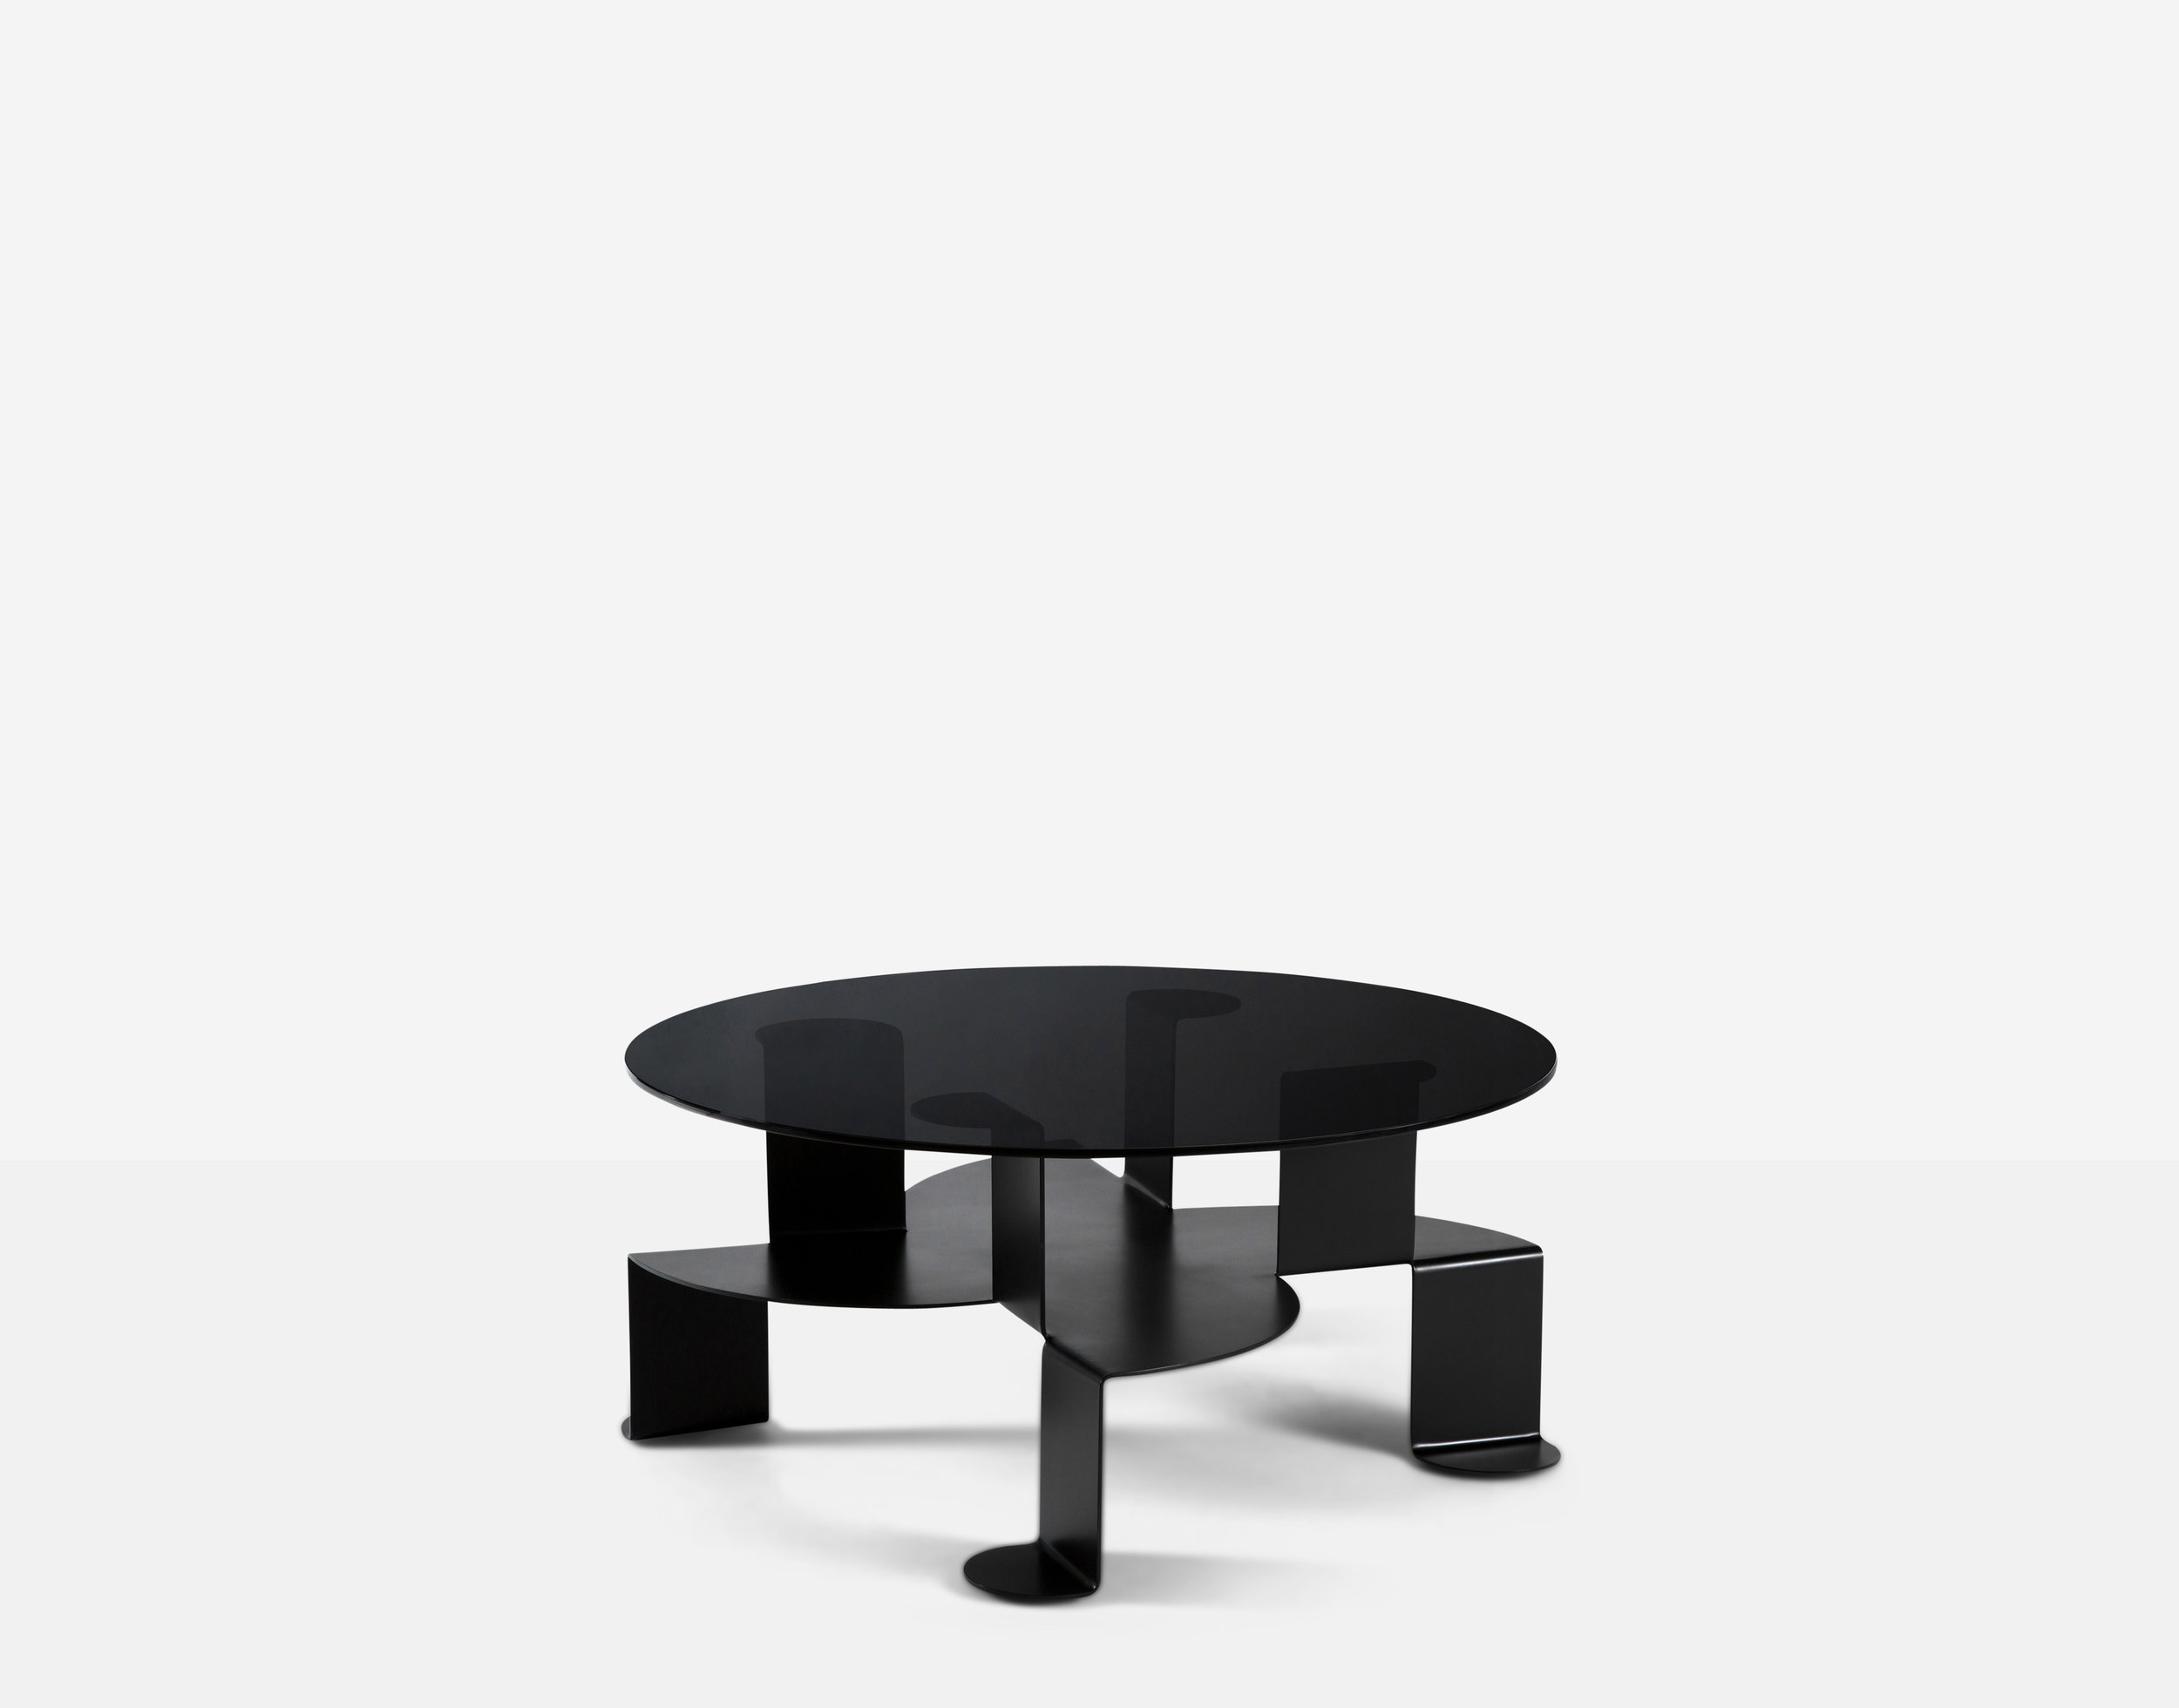 Luteca_PRV_Aspa-Coffee-Table_Black-Steel-Black-Glass_F-W.jpg